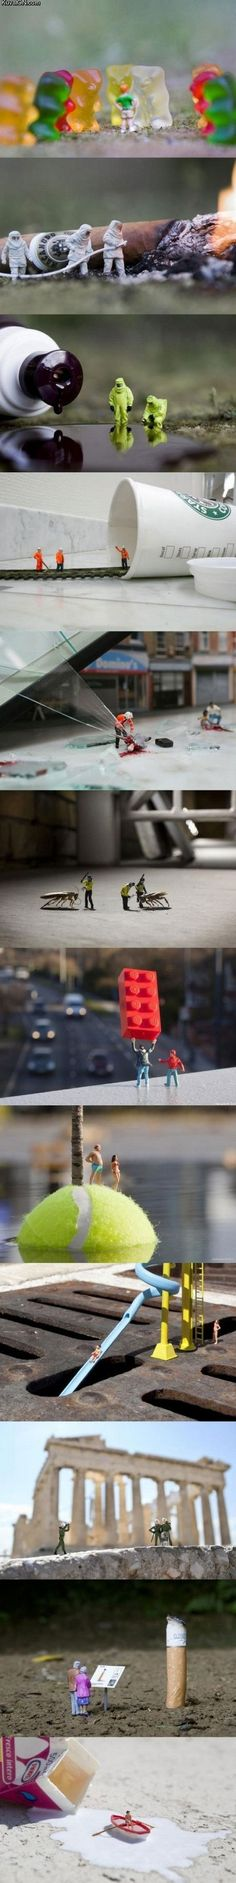 I love the creative uses of everyday objects to create the miniature world. Miniatures